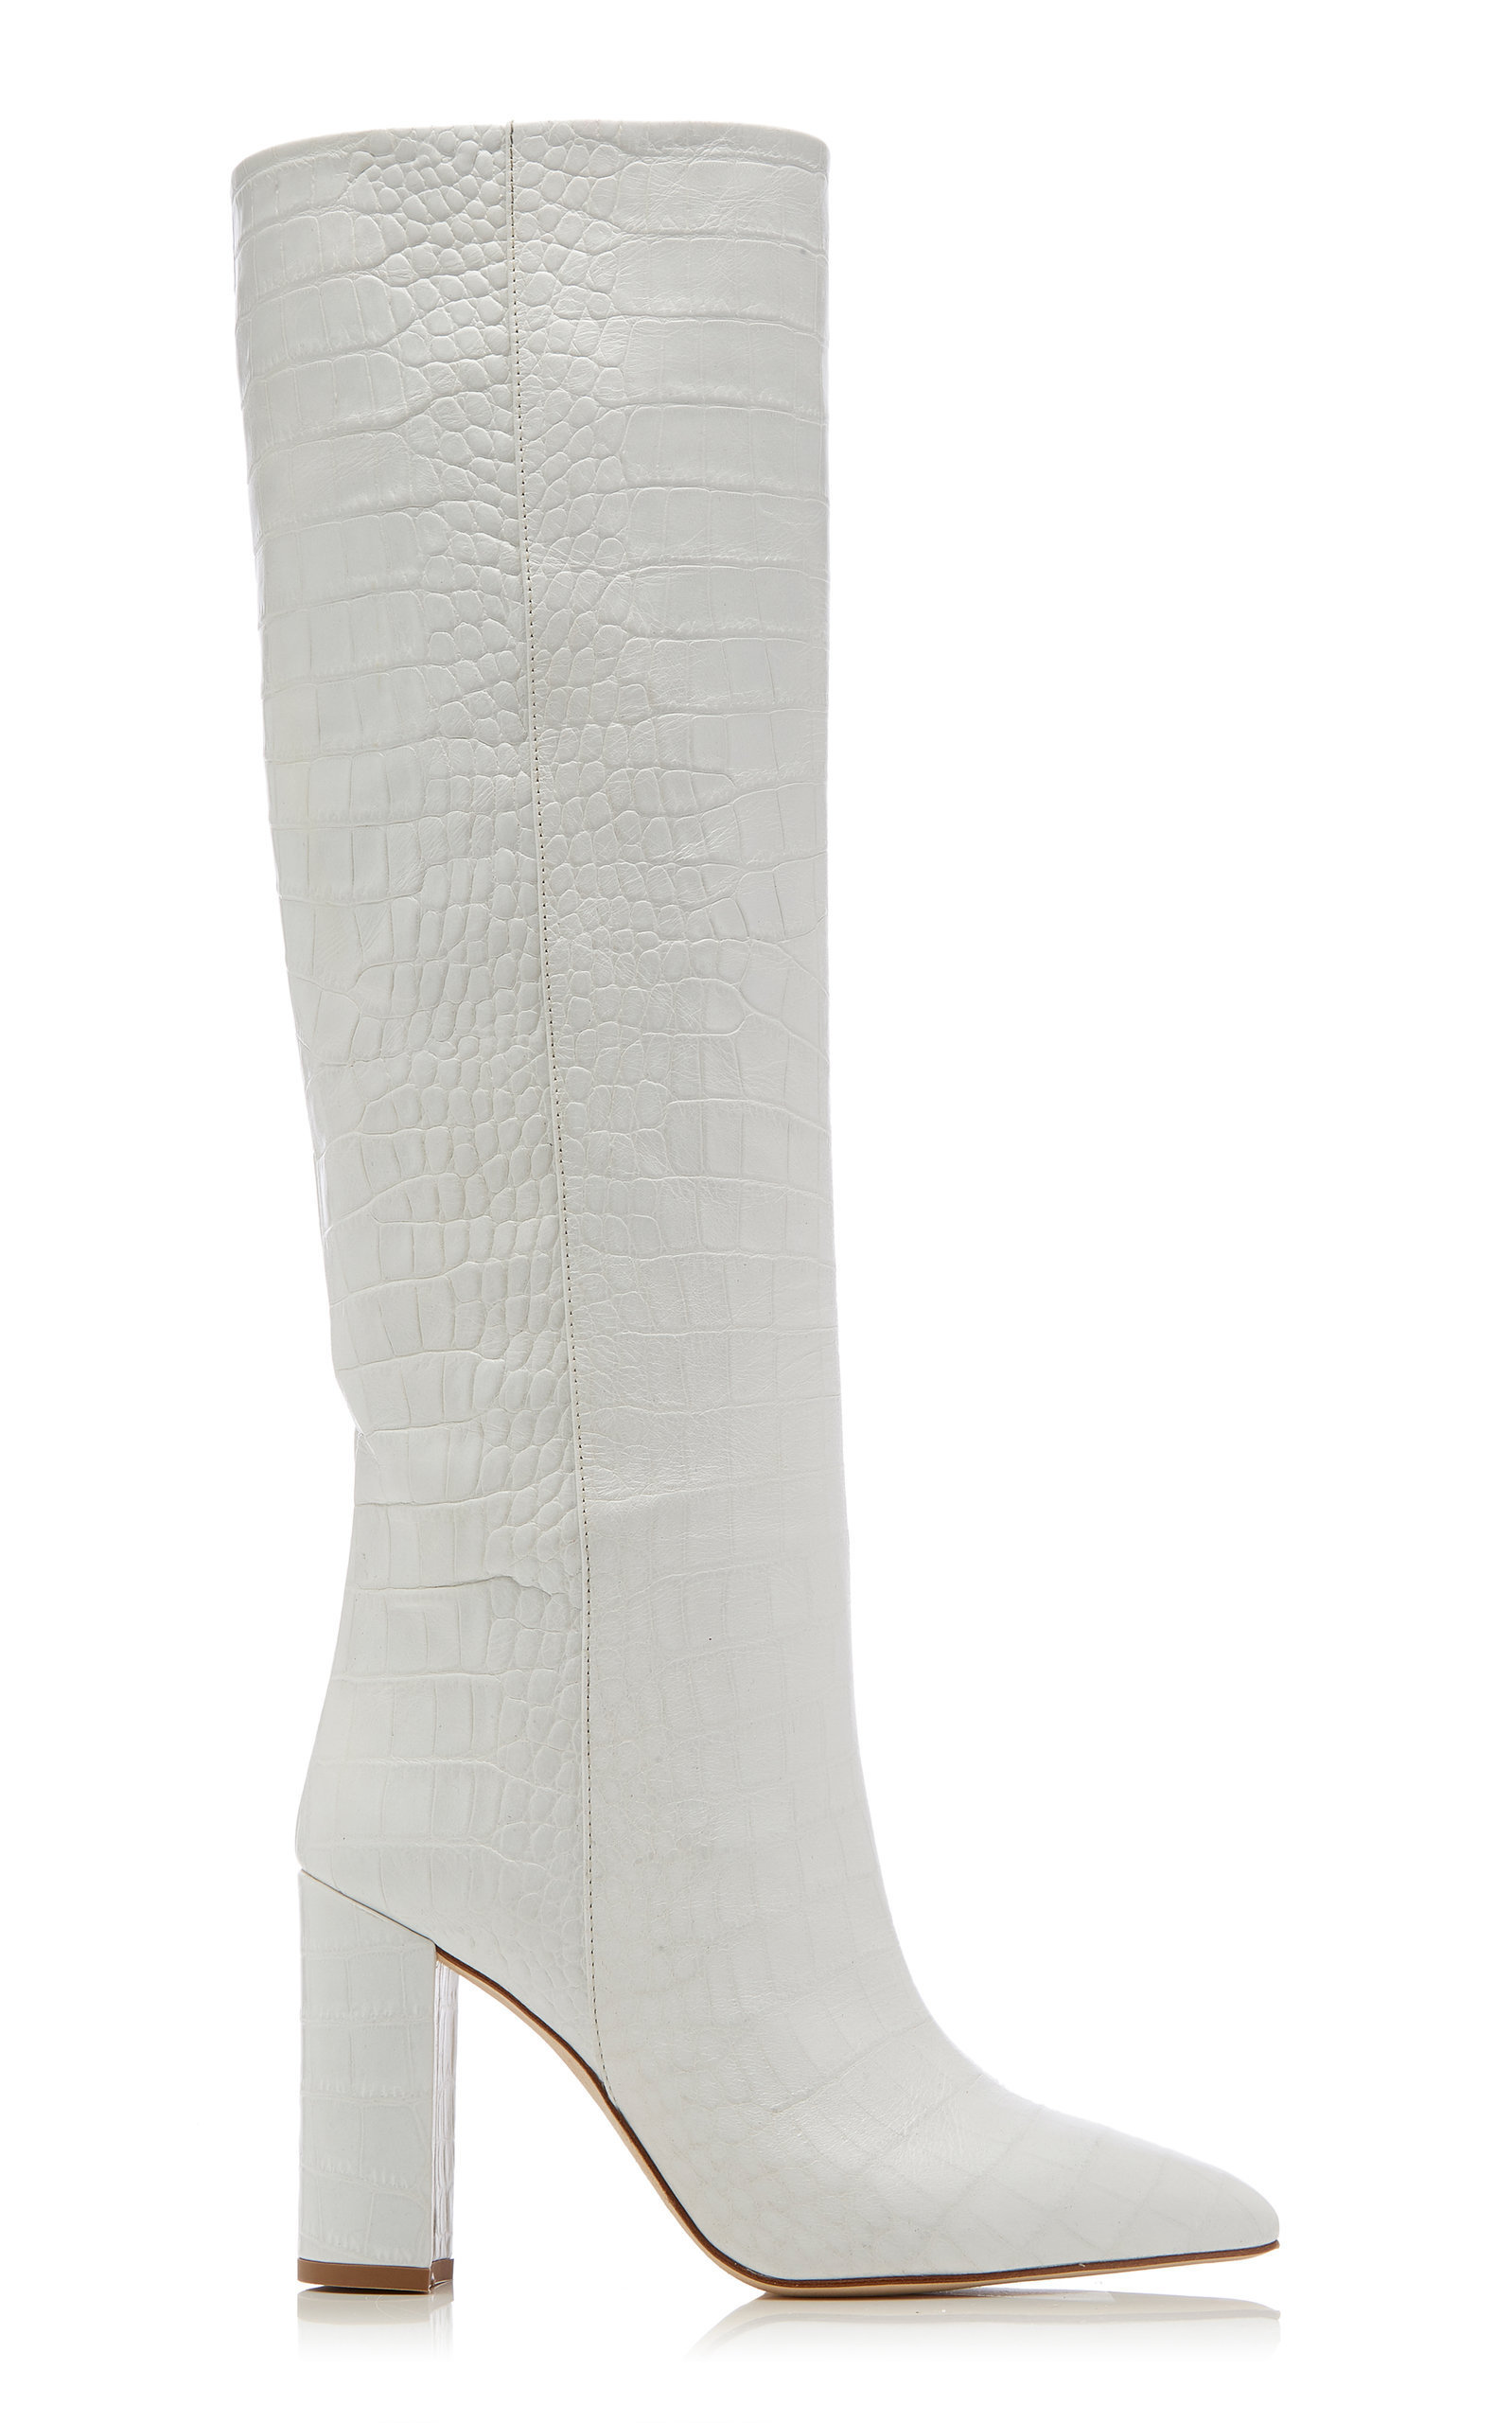 9218f0656 Paris Texas Croc-Embossed Leather Knee Boots In White